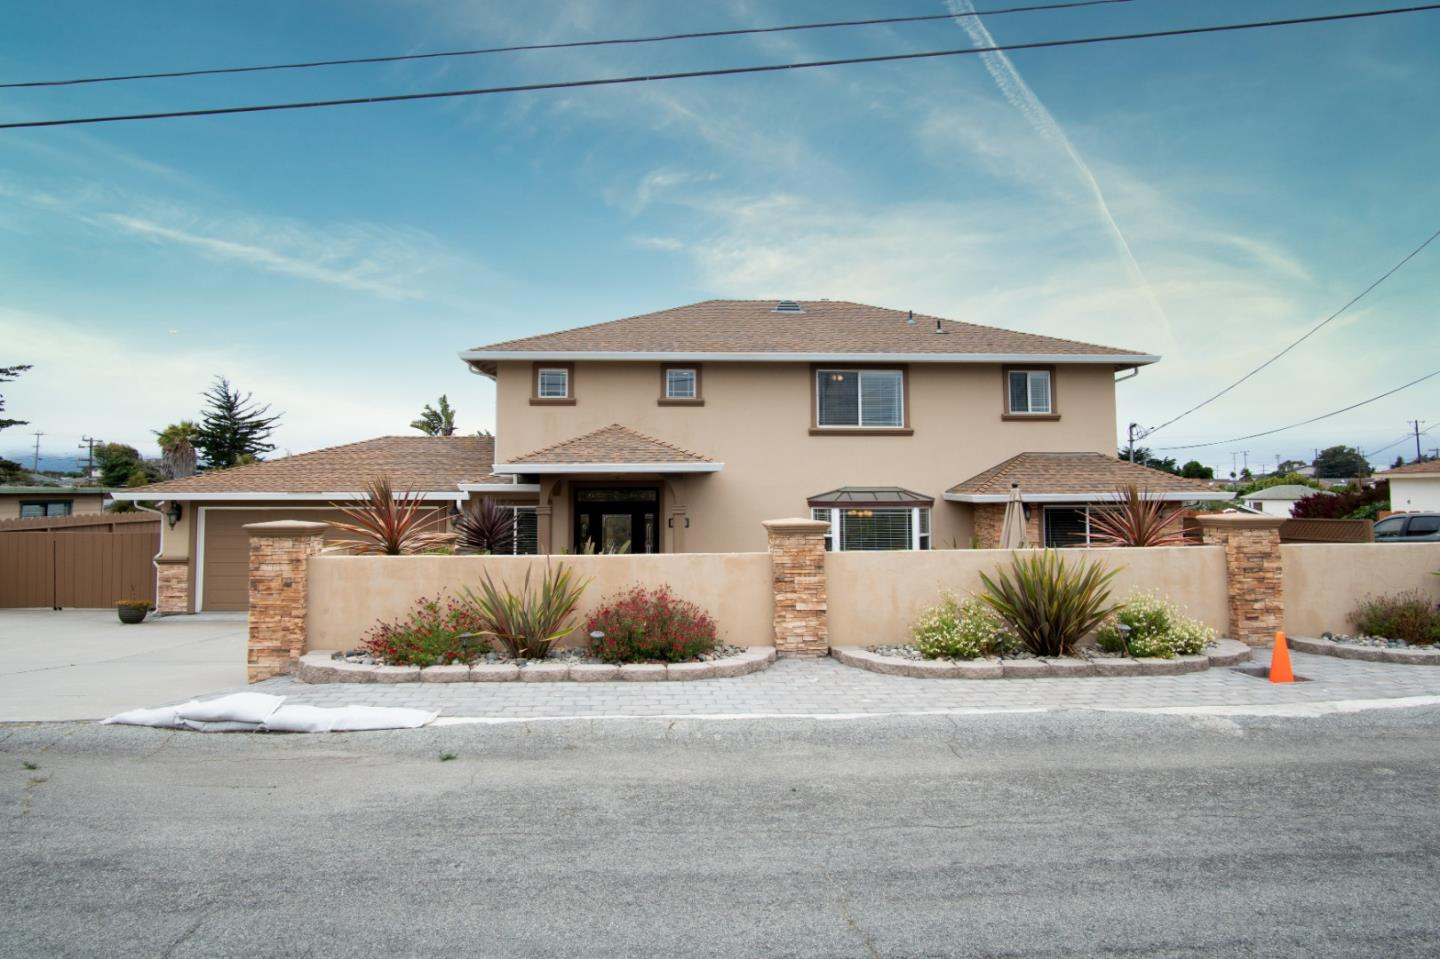 Photo of 2085 Cross ST, SEASIDE, CA 93955